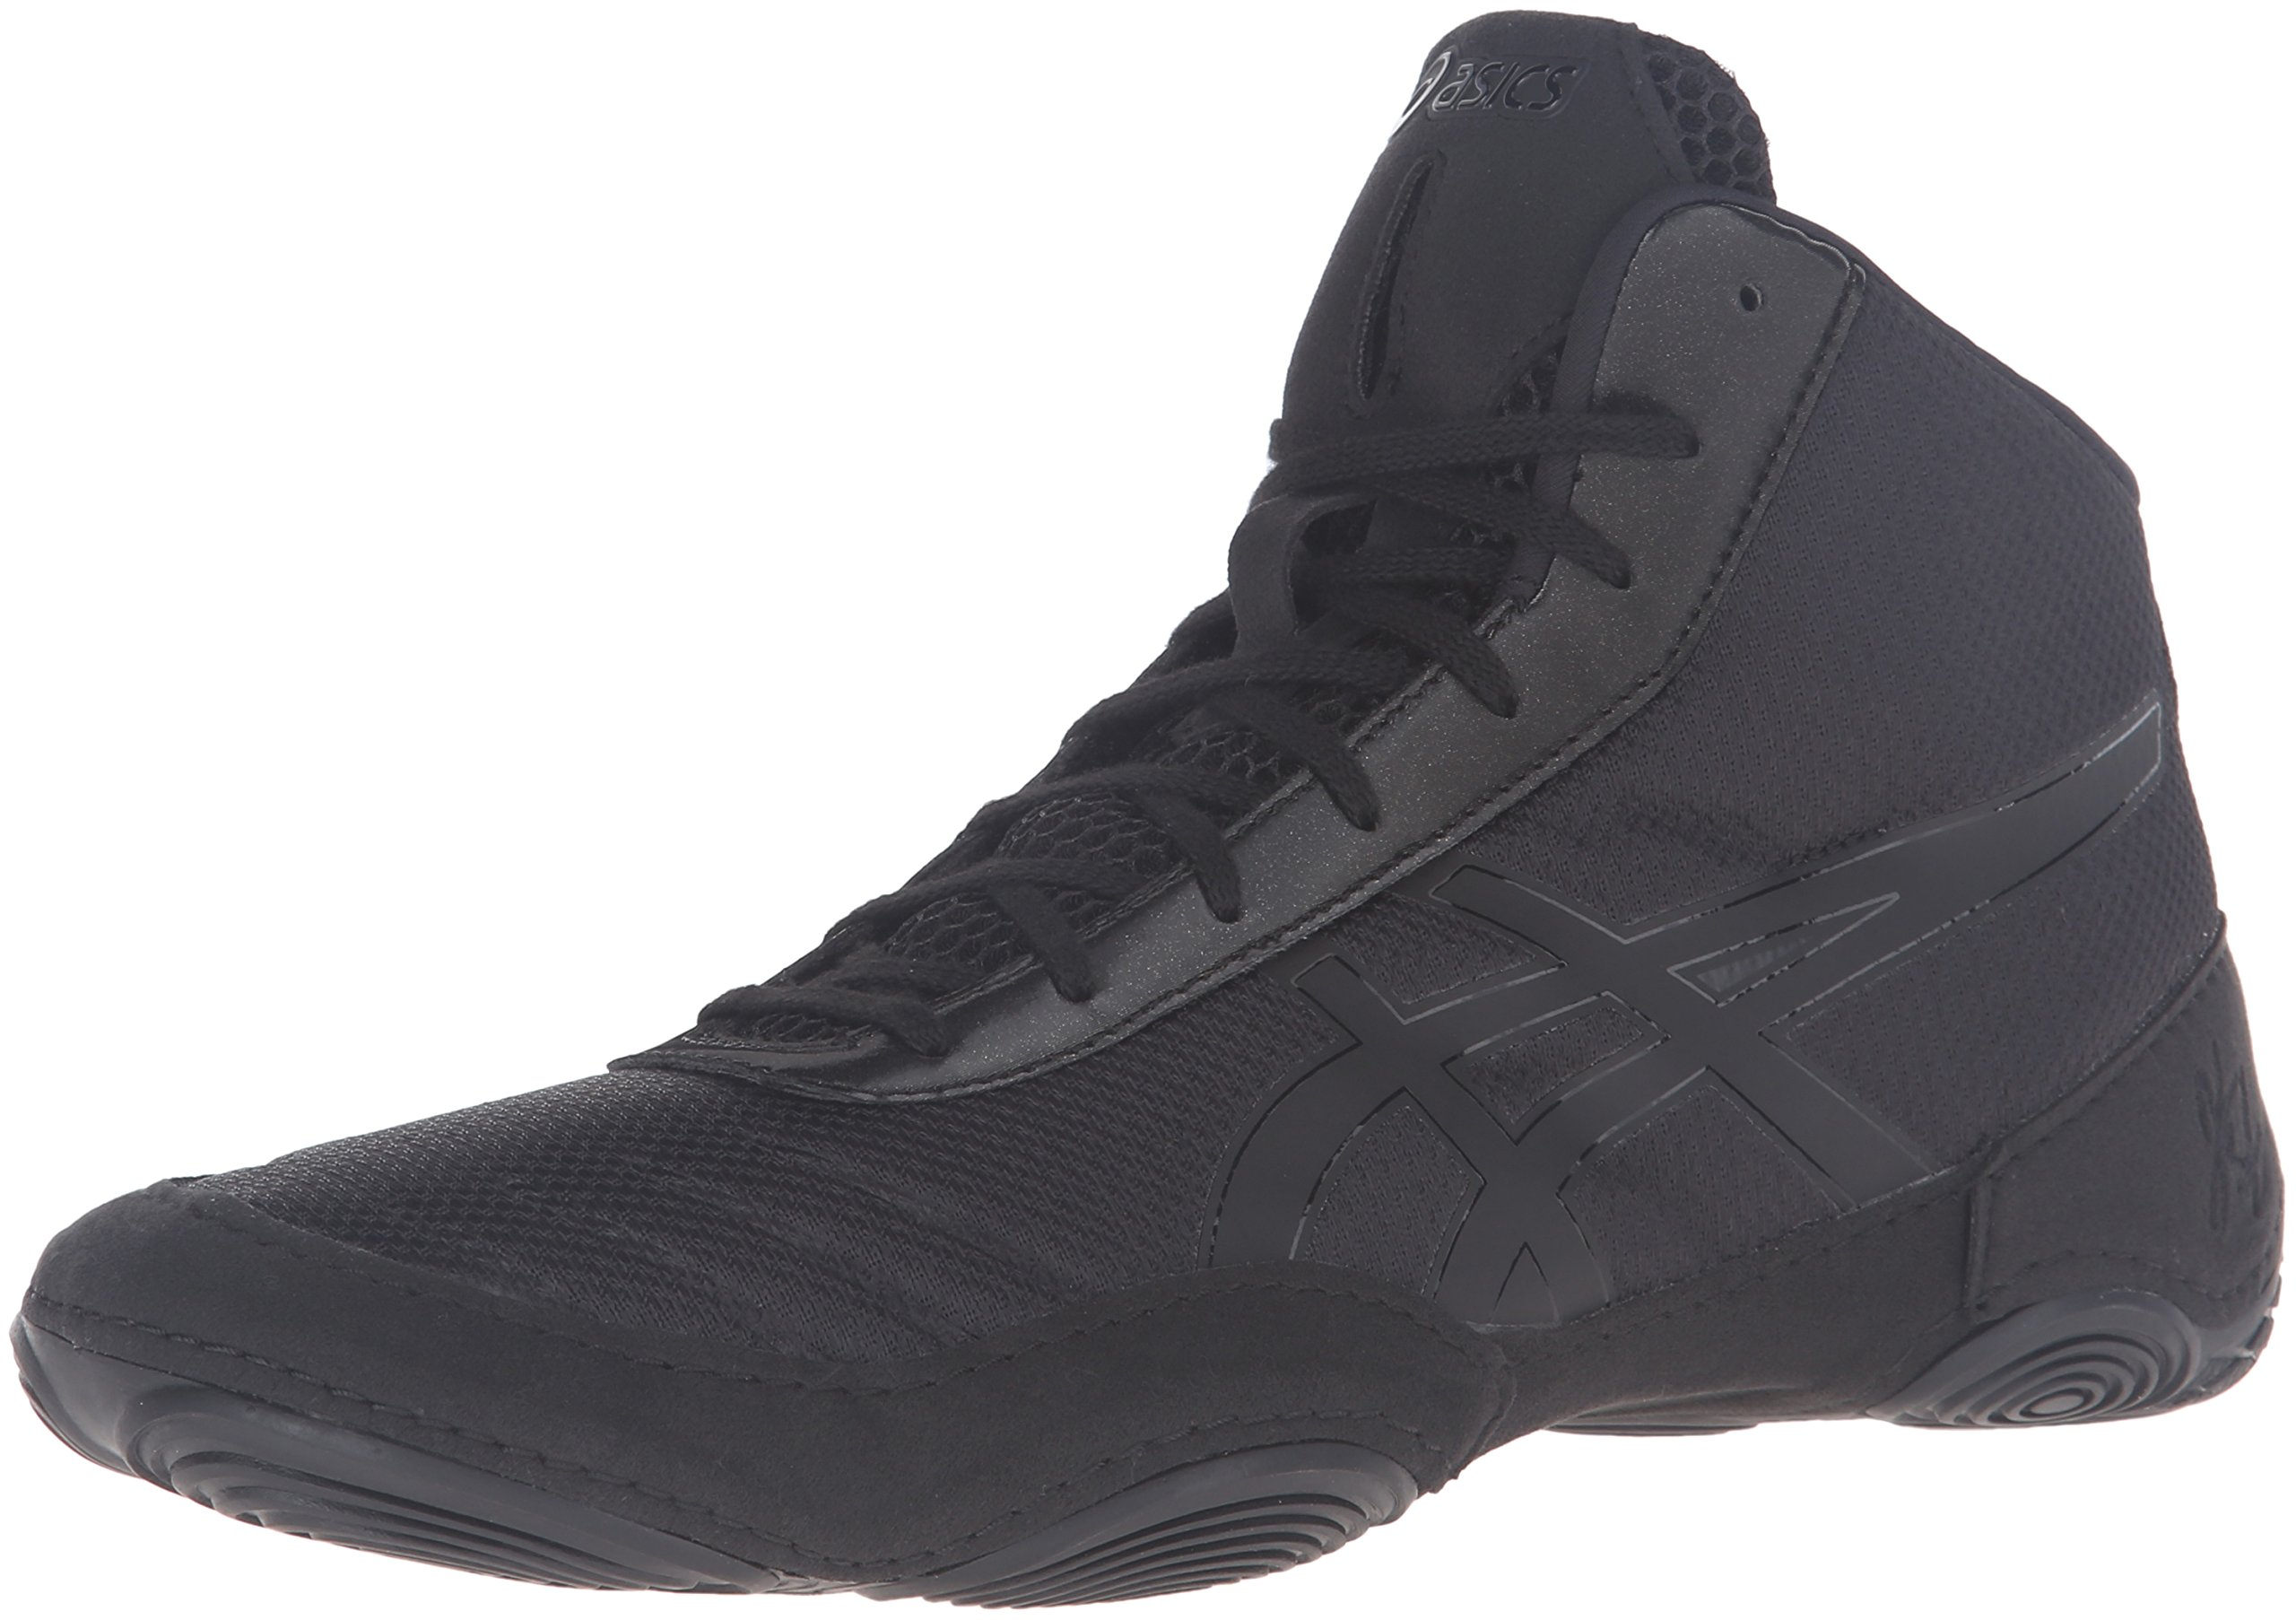 ASICS Men's JB Elite V2.0 Wrestling Shoe, Black/Onyx, 13 M US